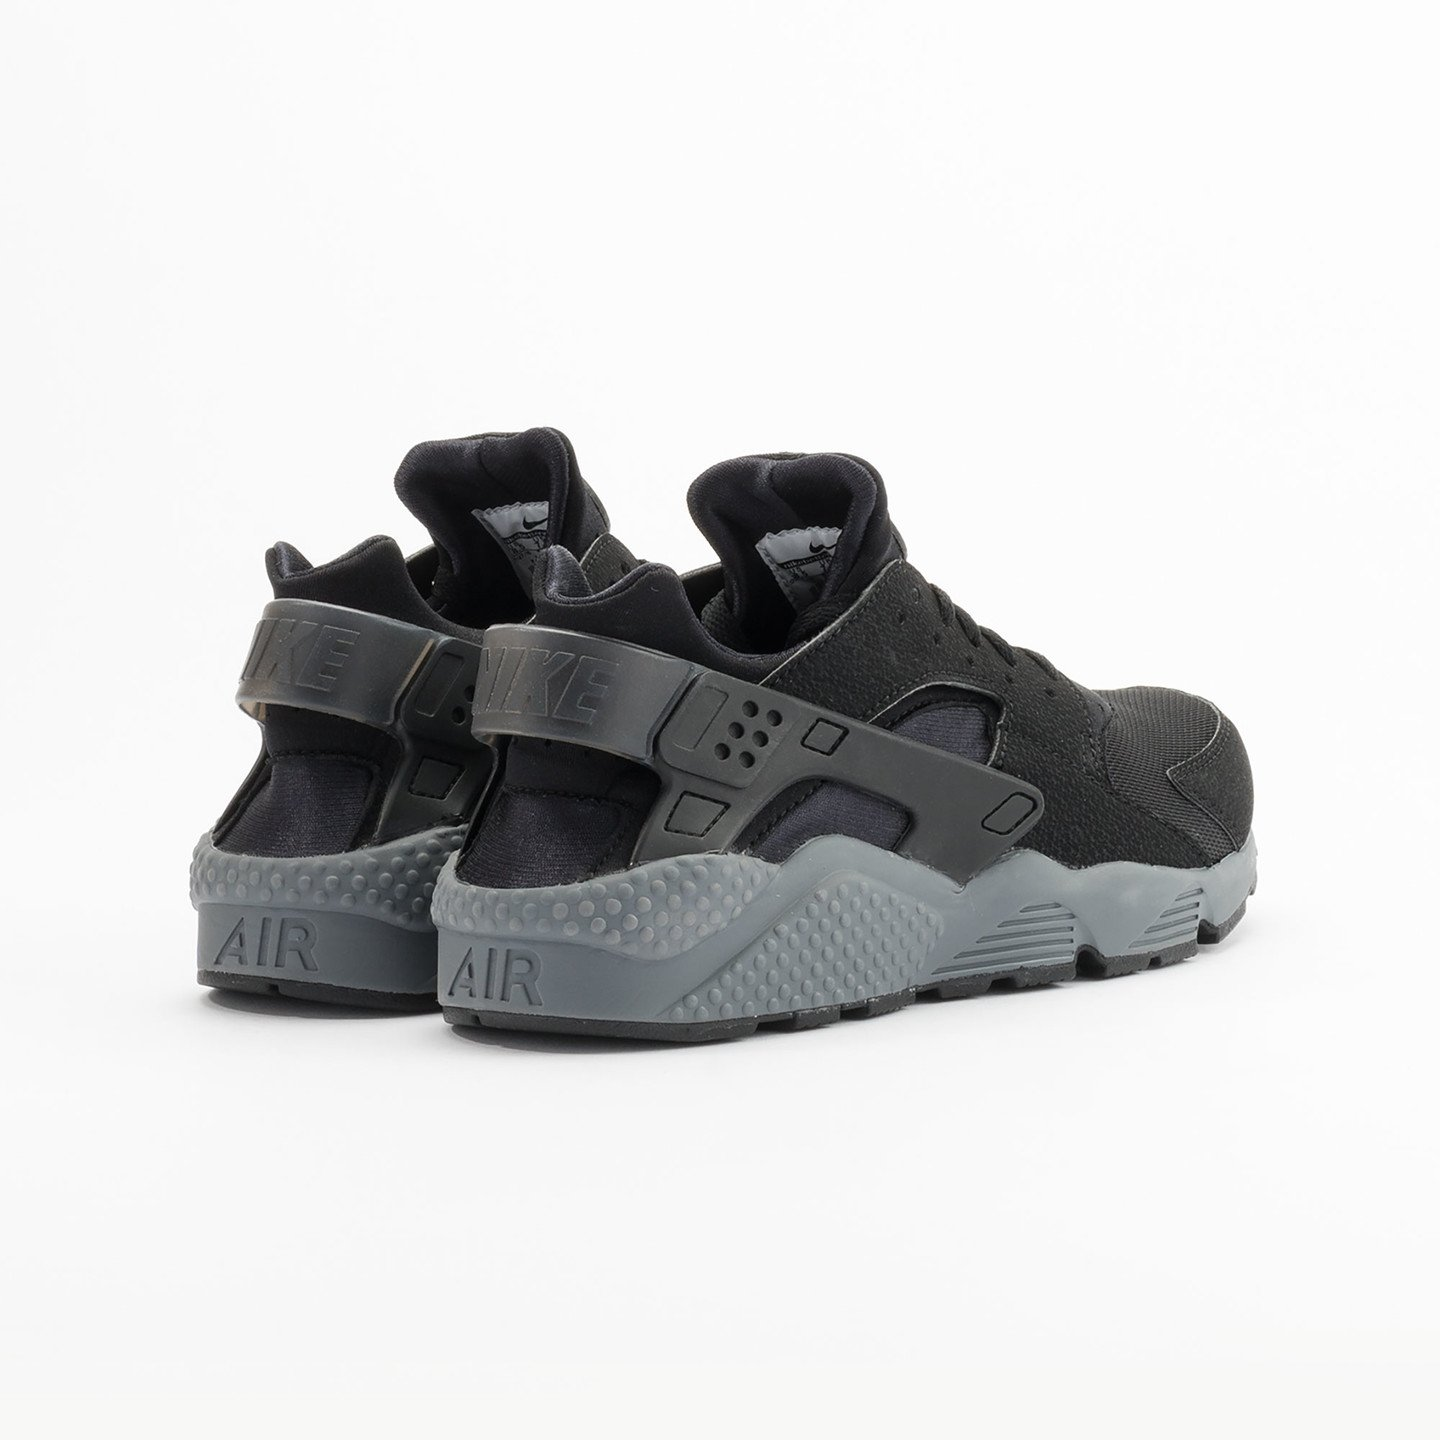 Nike Air Huarache Black / Dark Grey 318429-010-47